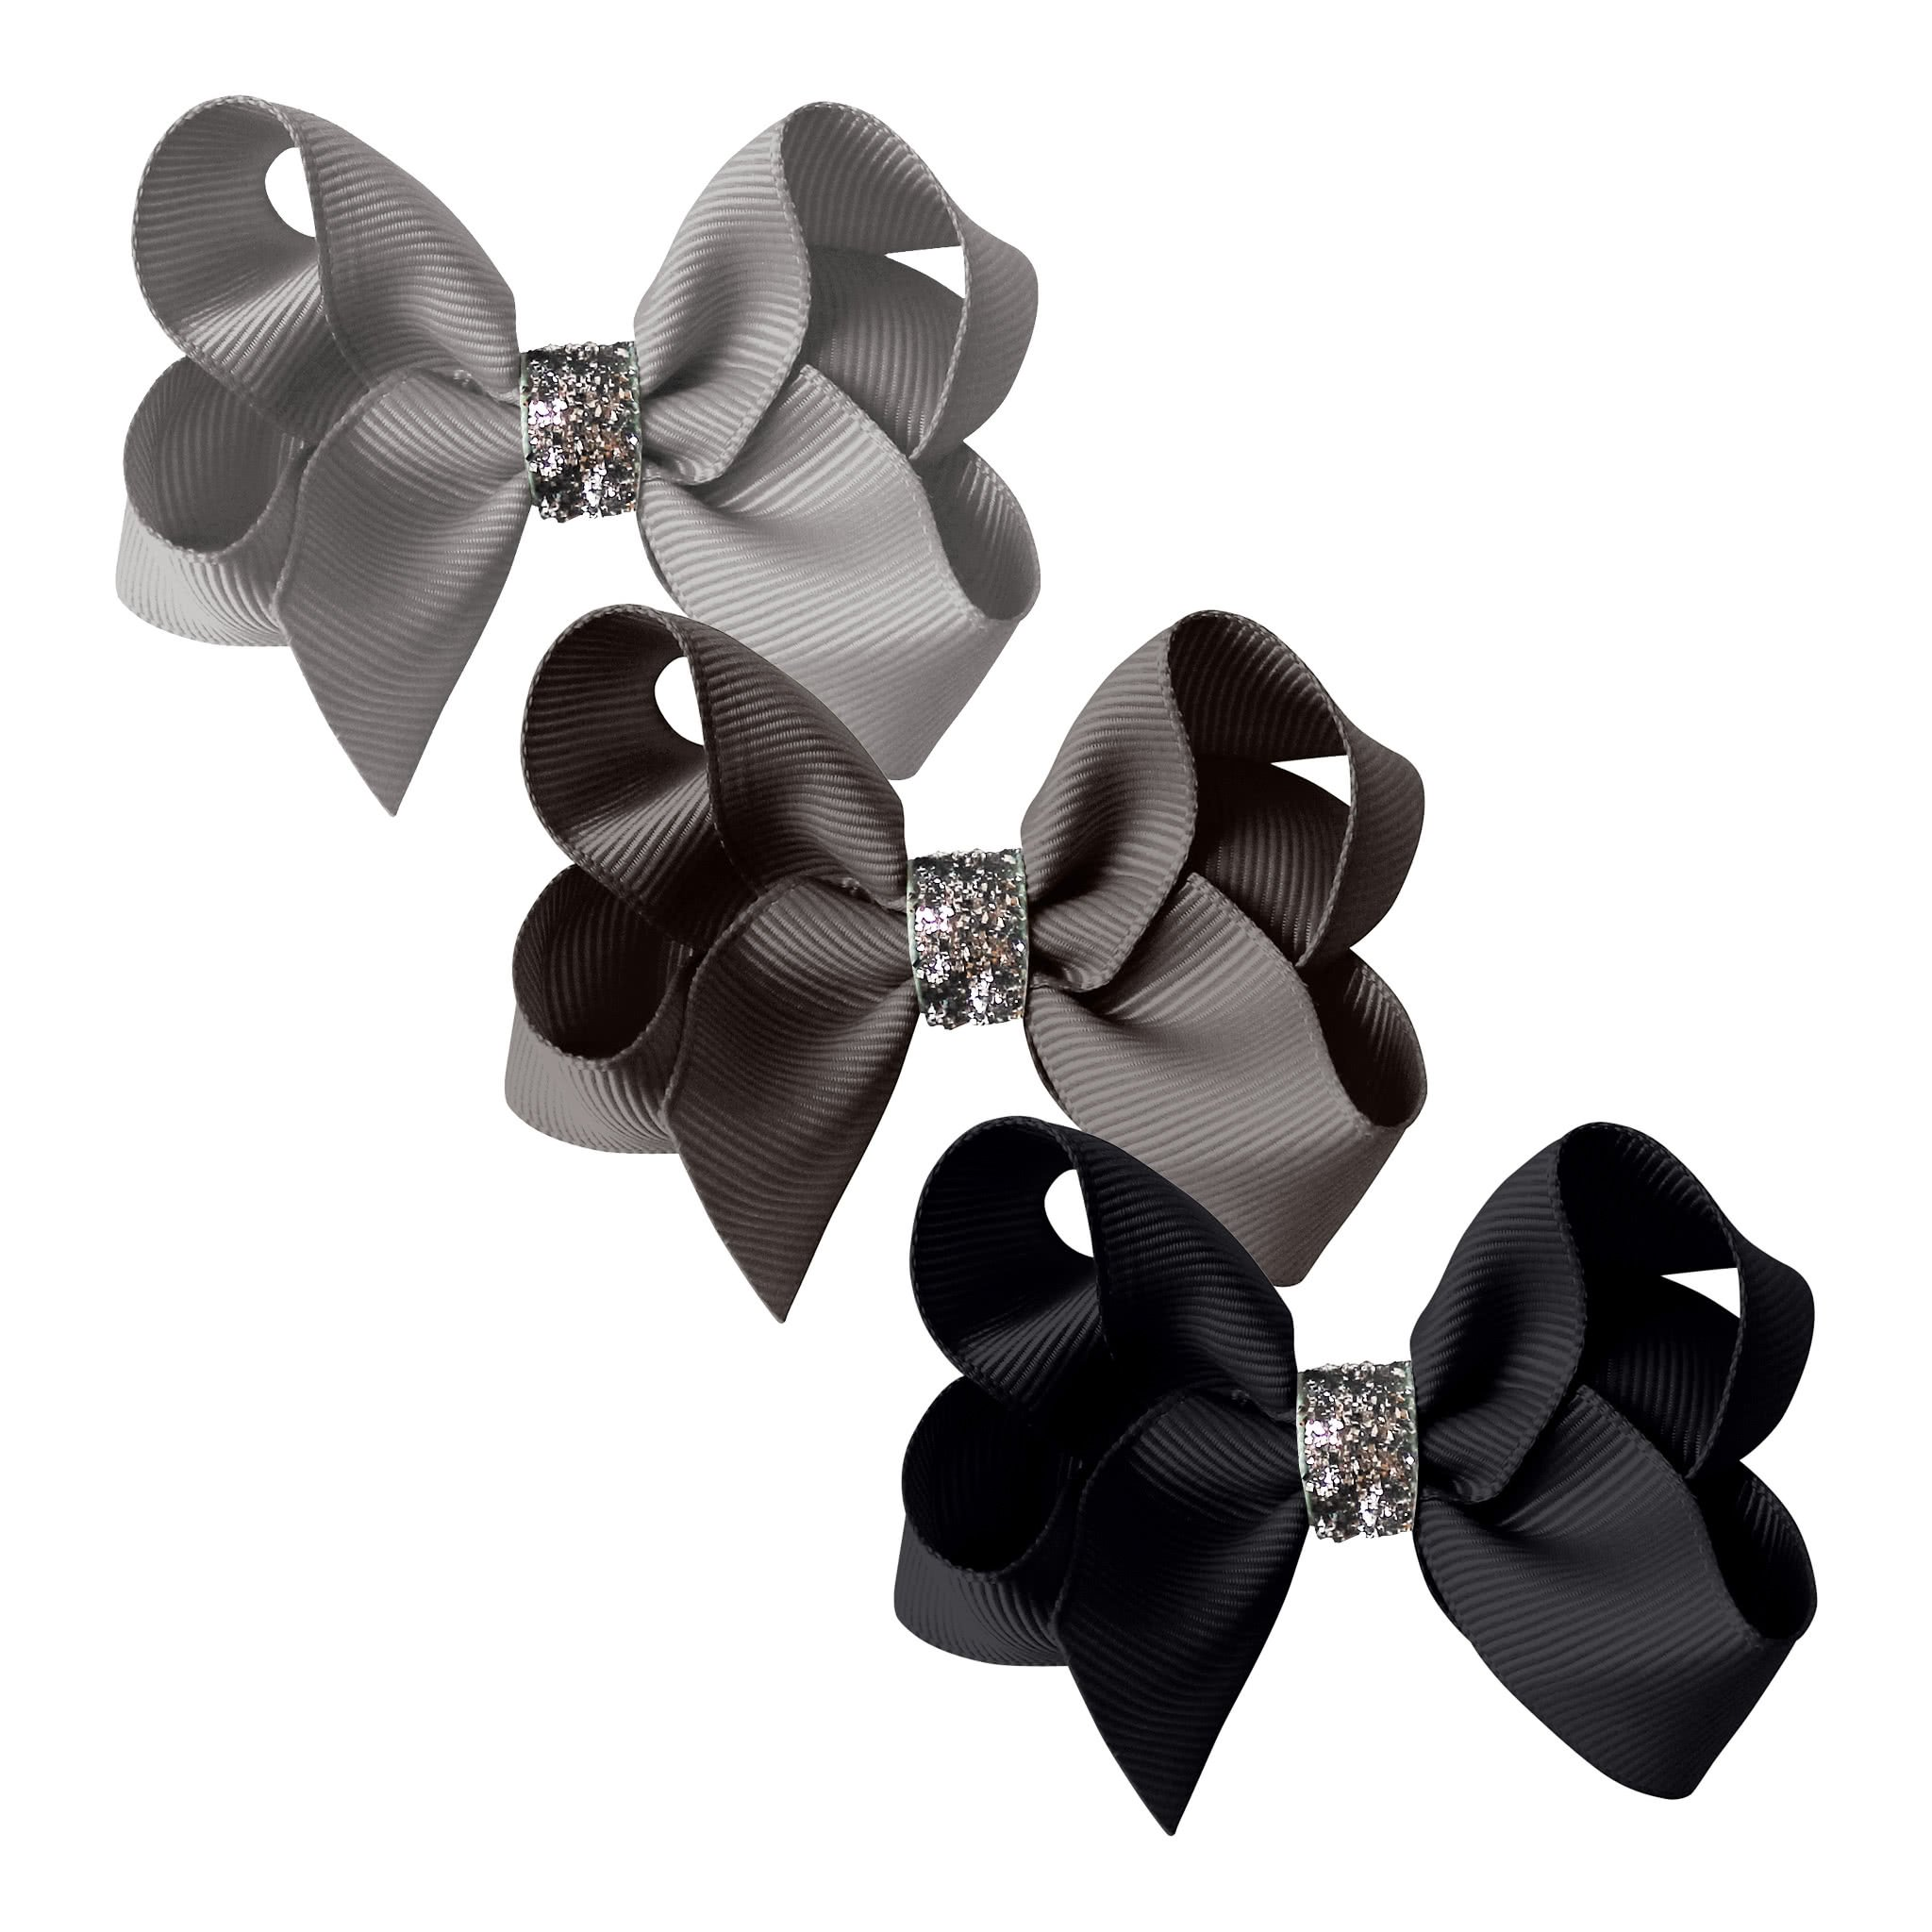 Image of Milledeux® gift set - Glitter Collection - 3 Medium boutique bows - grey/black